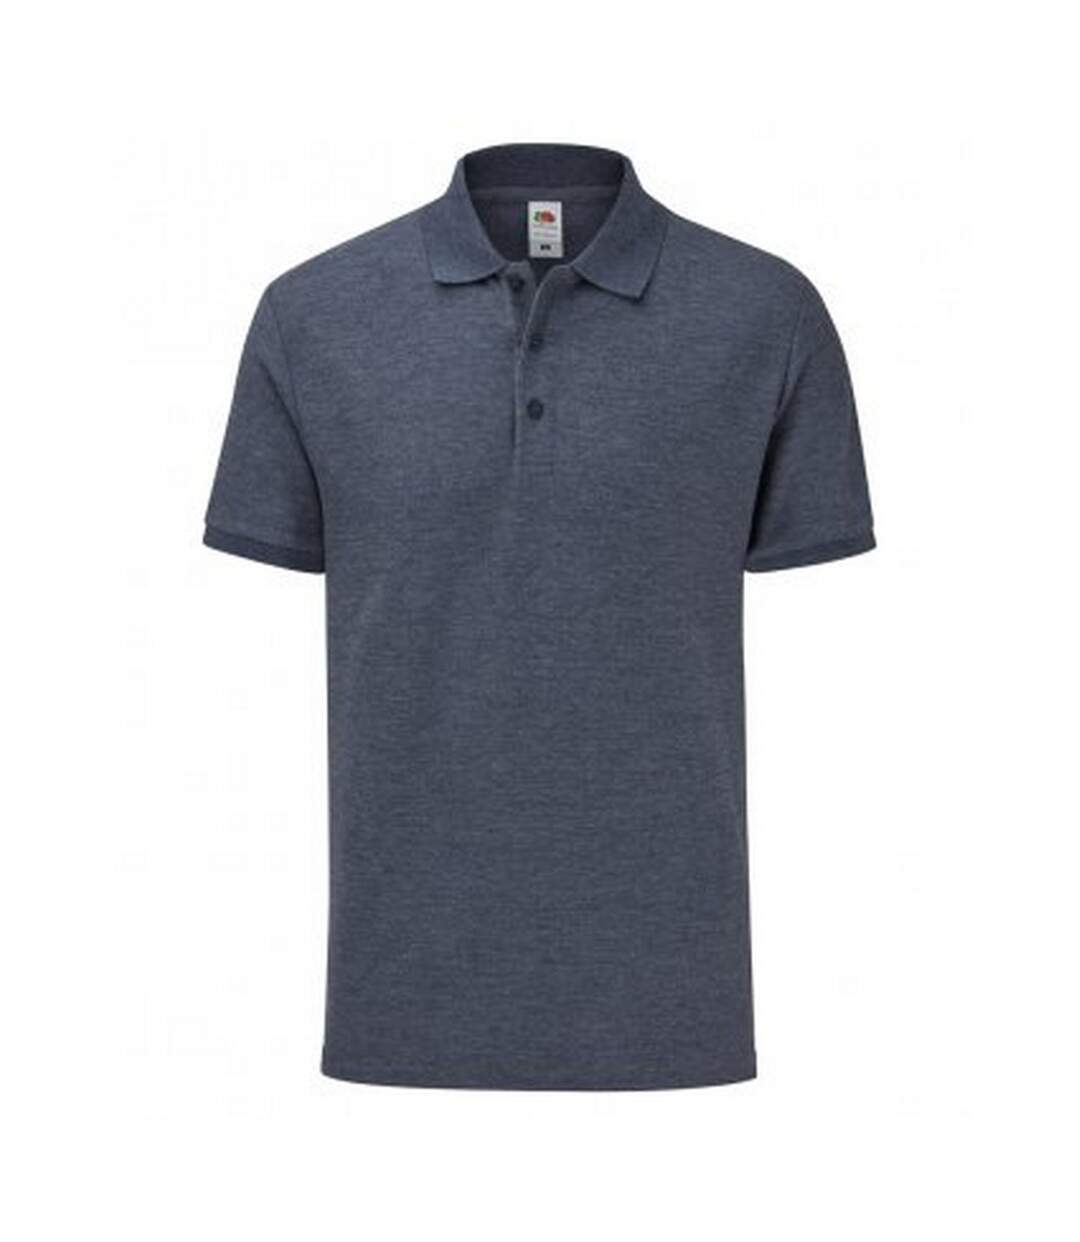 Fruit Of The Loom Mens Tailored Poly/Cotton Piqu Polo Shirt (Heather Navy) - UTPC3572